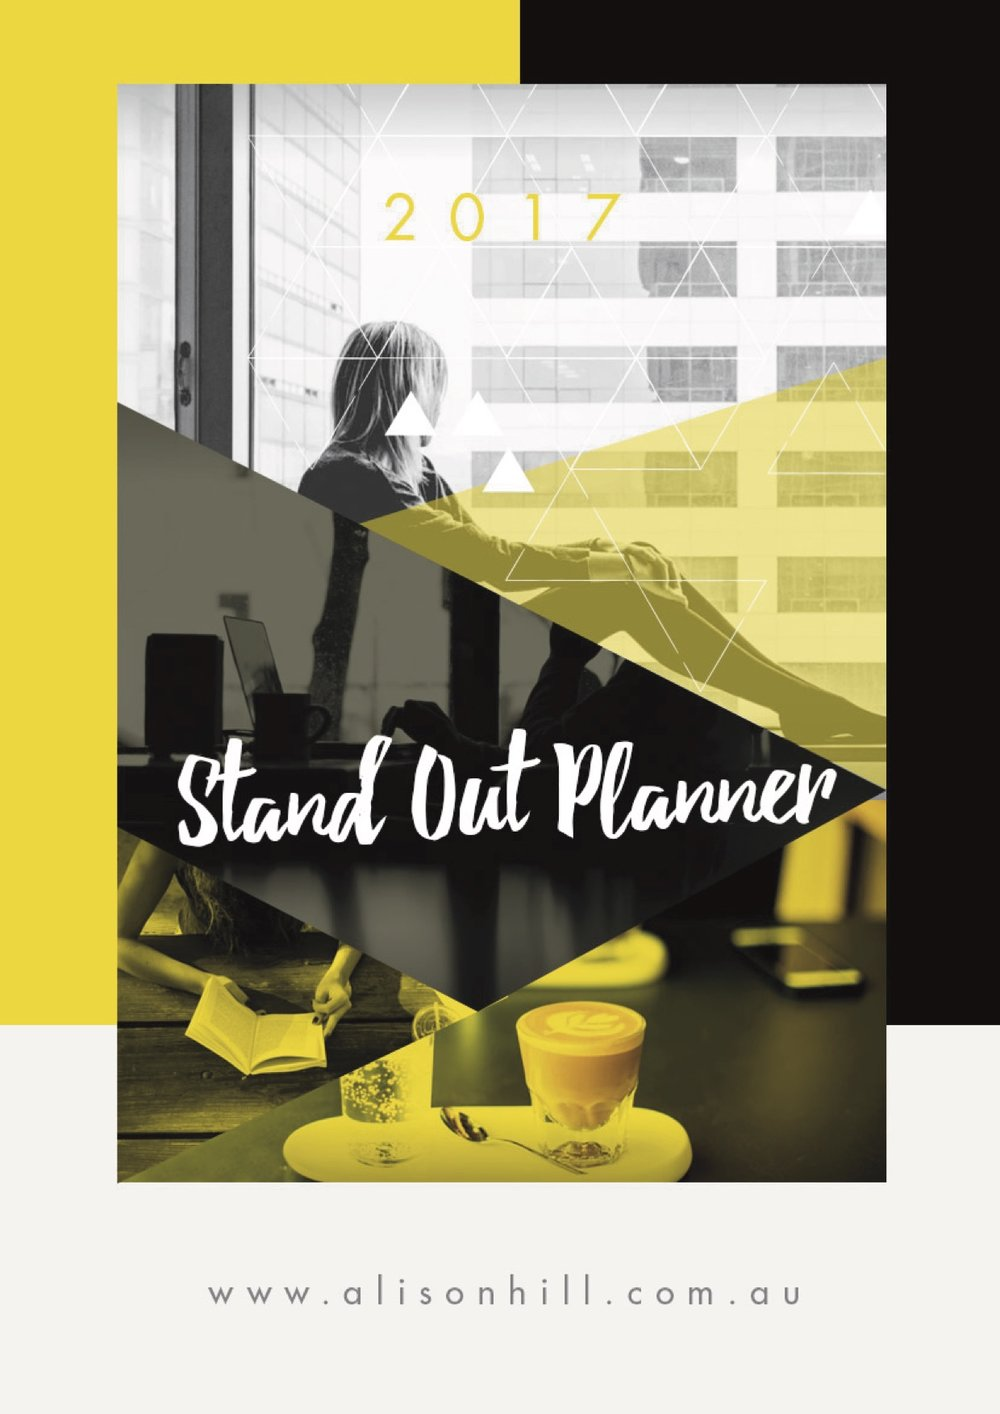 FREE DOWNLOAD - 2017 PLANNER Fill out your details below and the planner will be whispering sweet nothings into your inbox shortly...